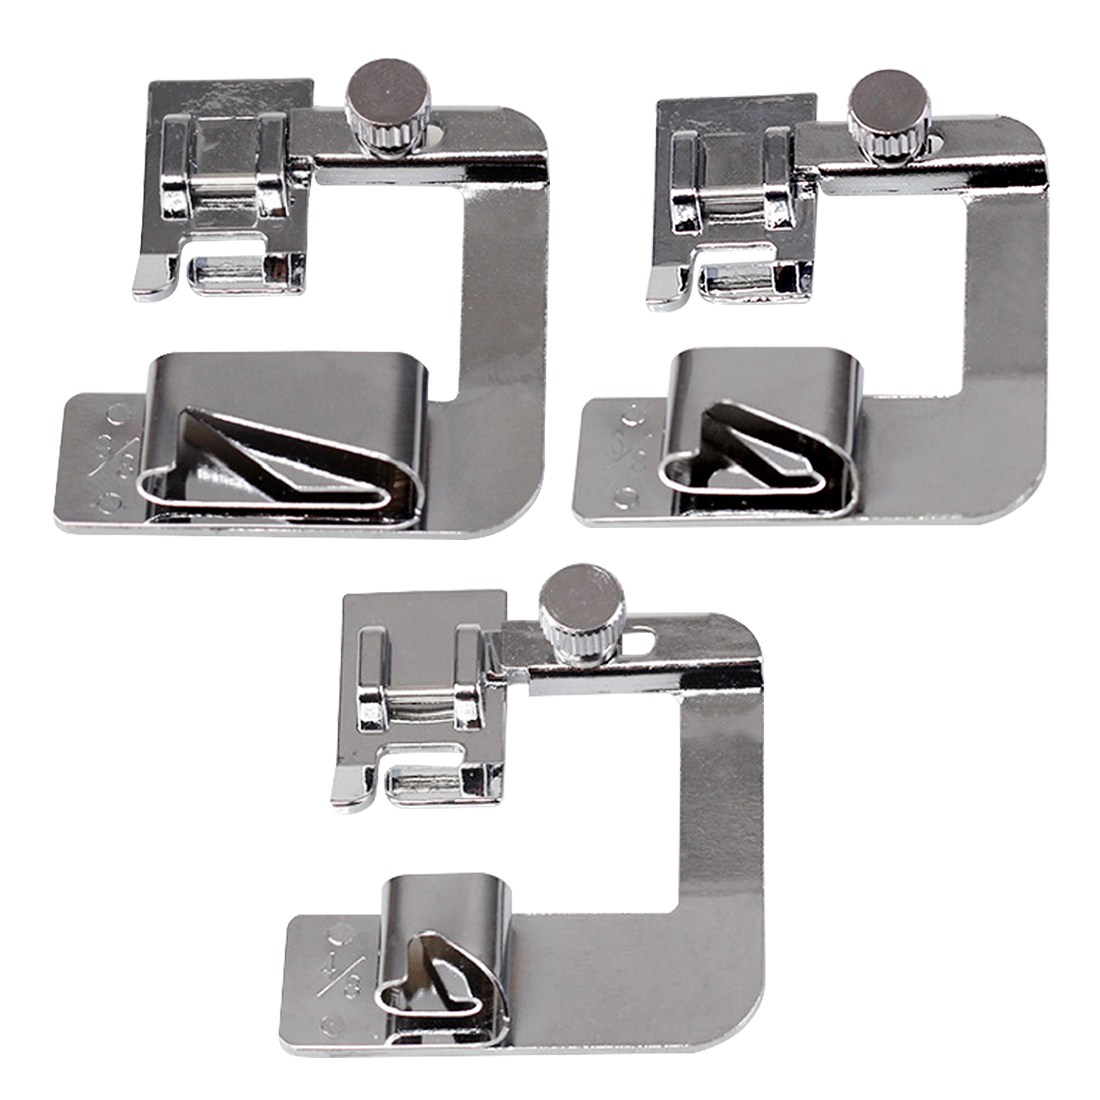 Household Hemming Cloth Strip Presser Foot Sewing Machine Parts Hemmer Foot Rolled Hem Foot for Singer Brother Sew Accessories